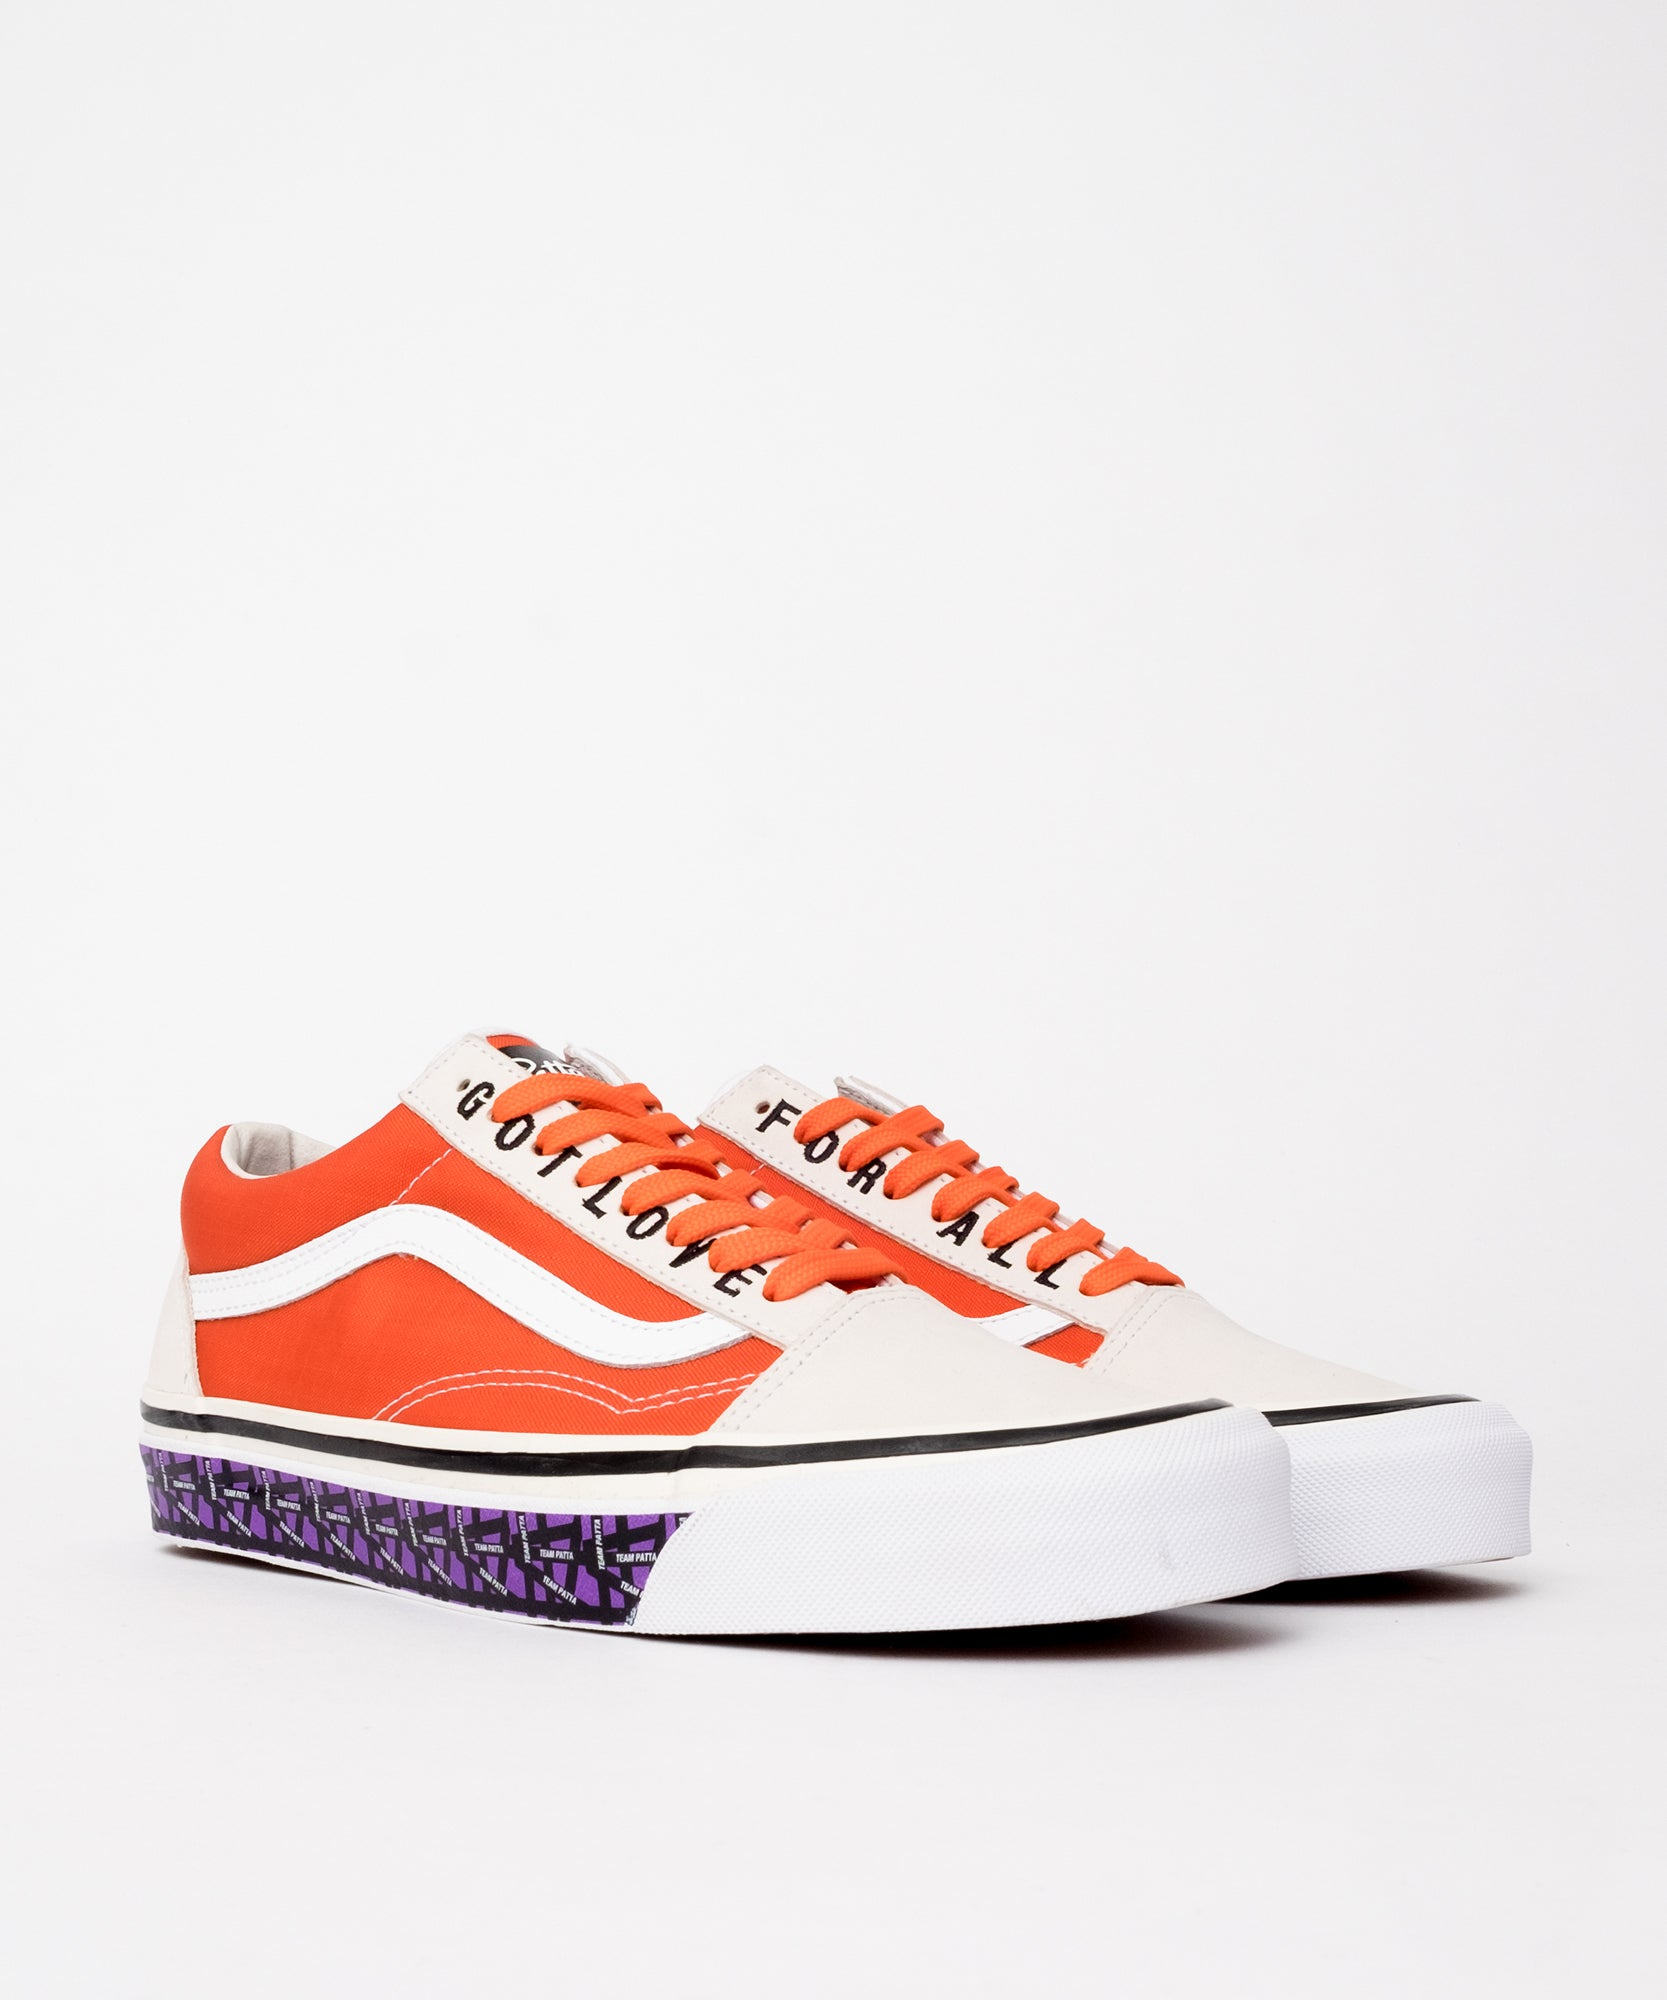 Details about Patta X Vans Got Love For All Old Skool Nyc Exclusive Size 10